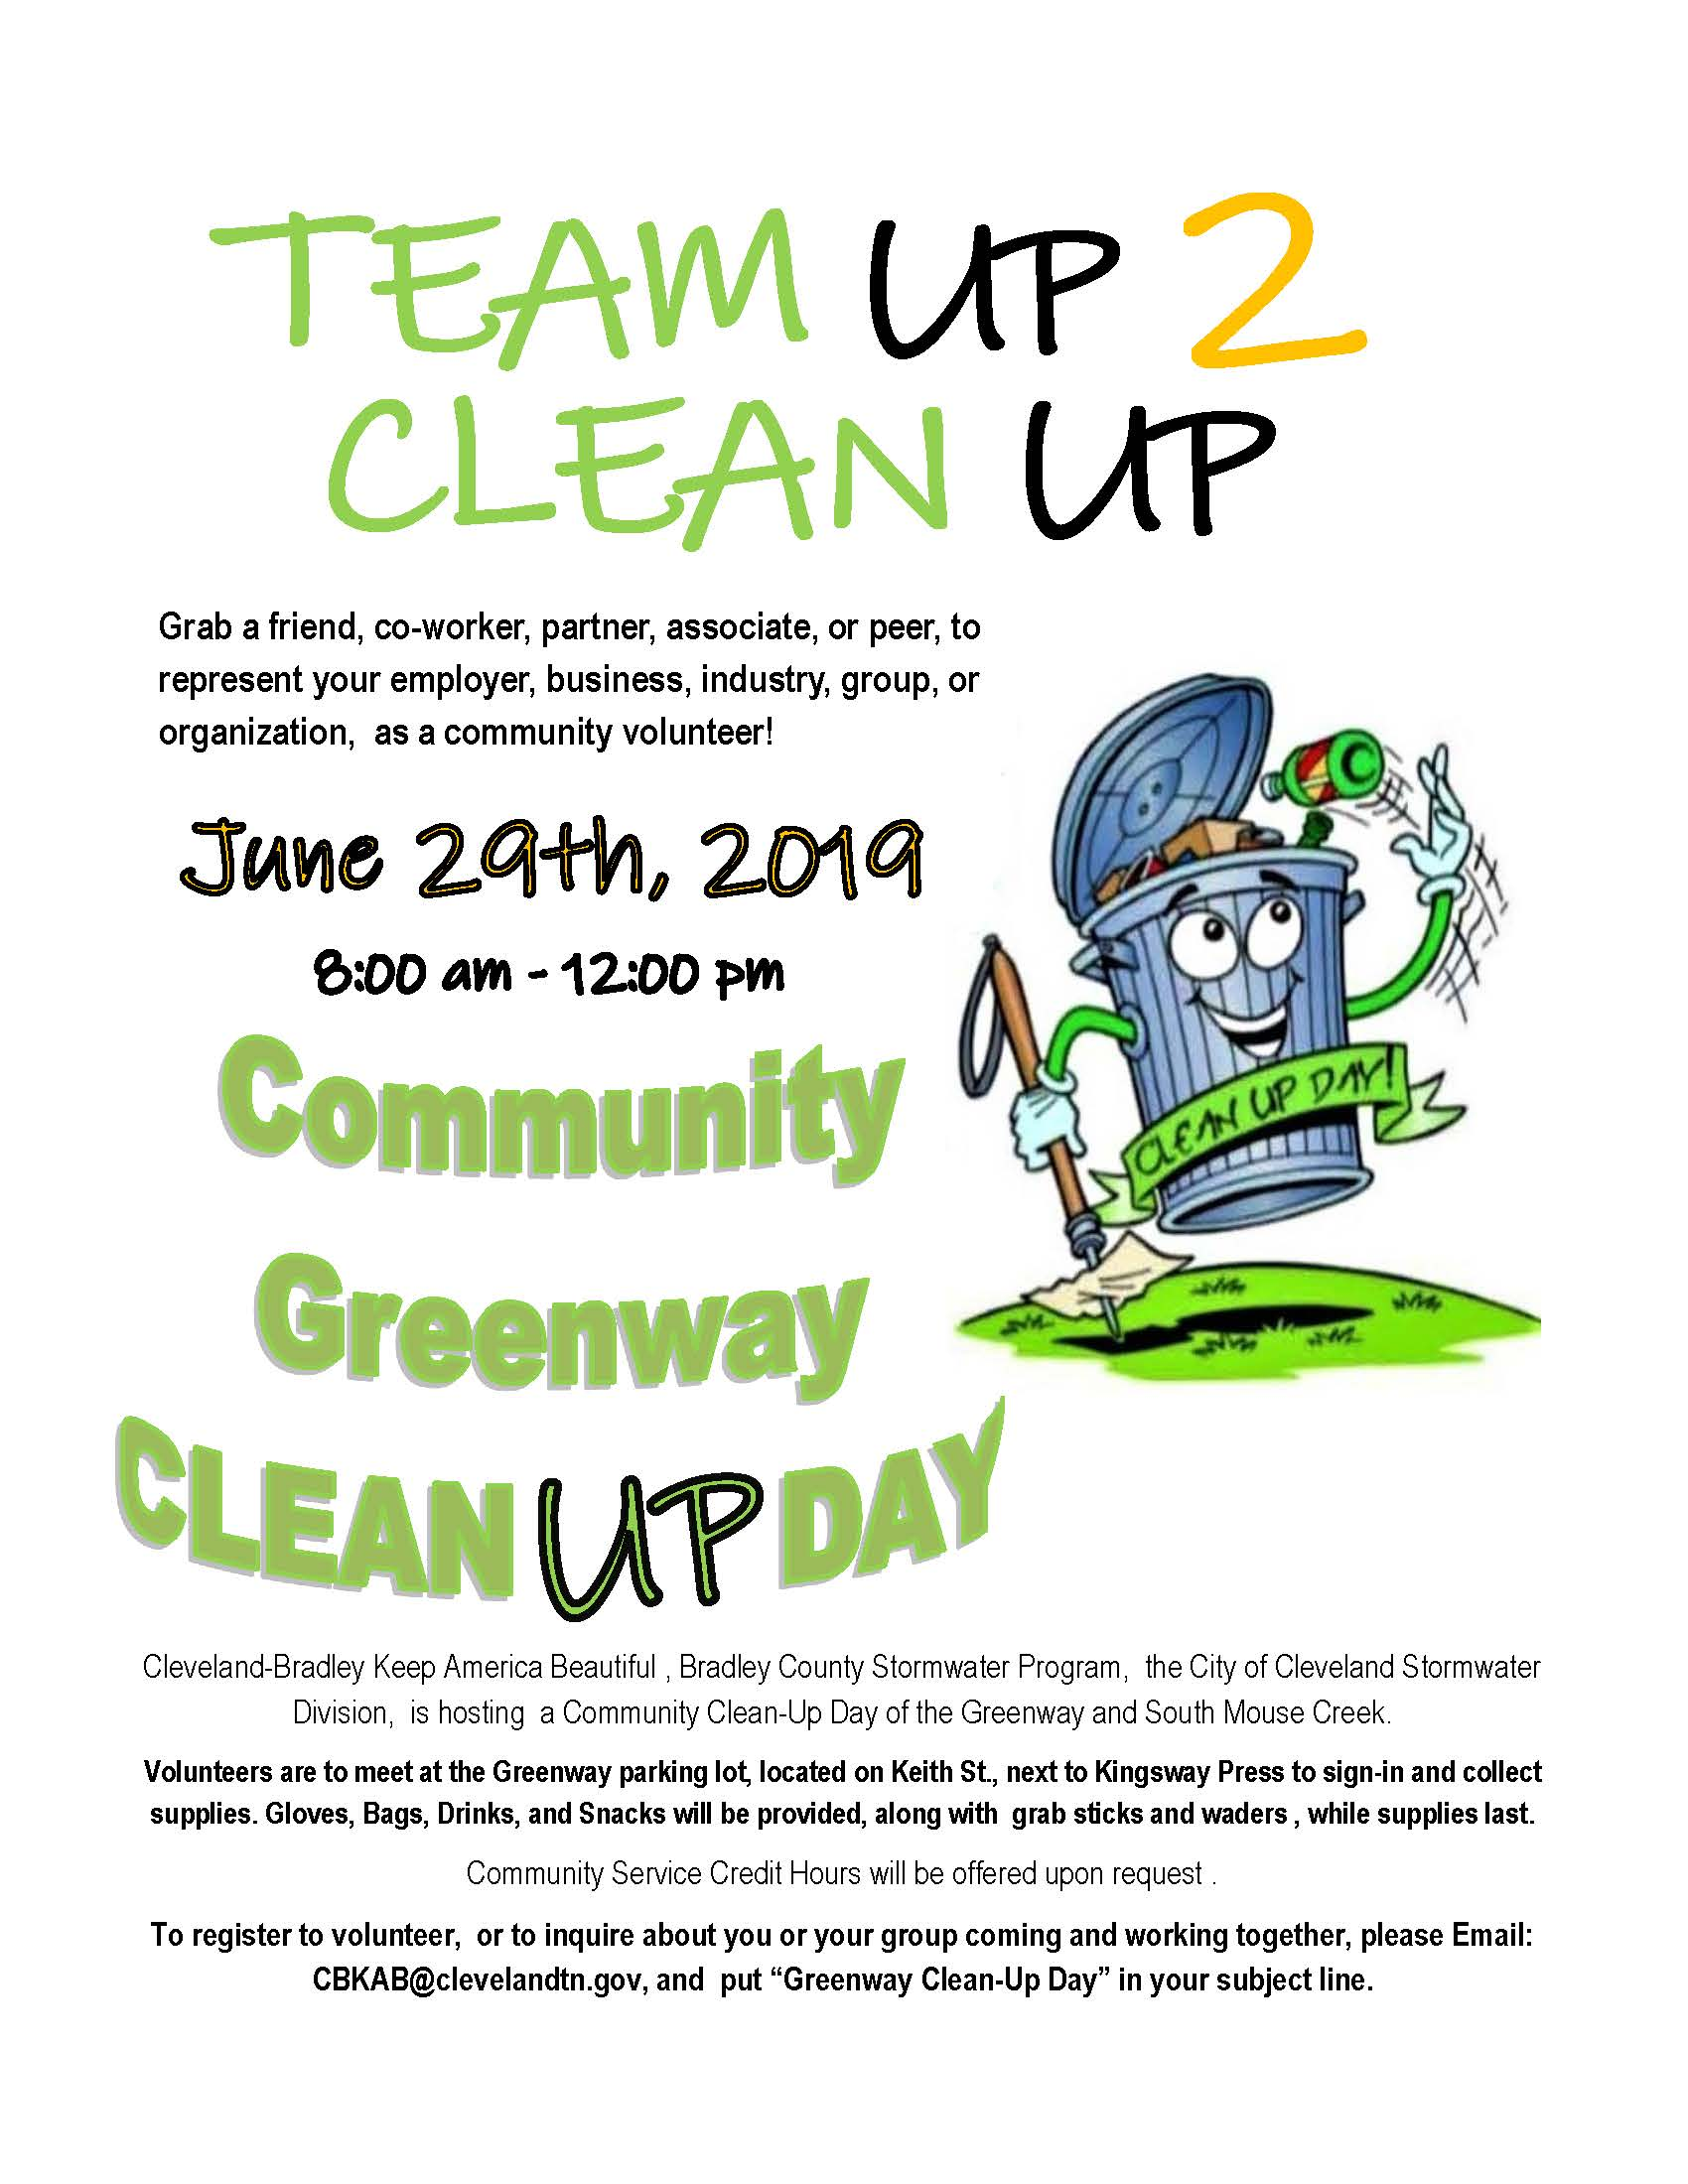 Team Up 2 Clean Up - Community Cleanup Opens in new window